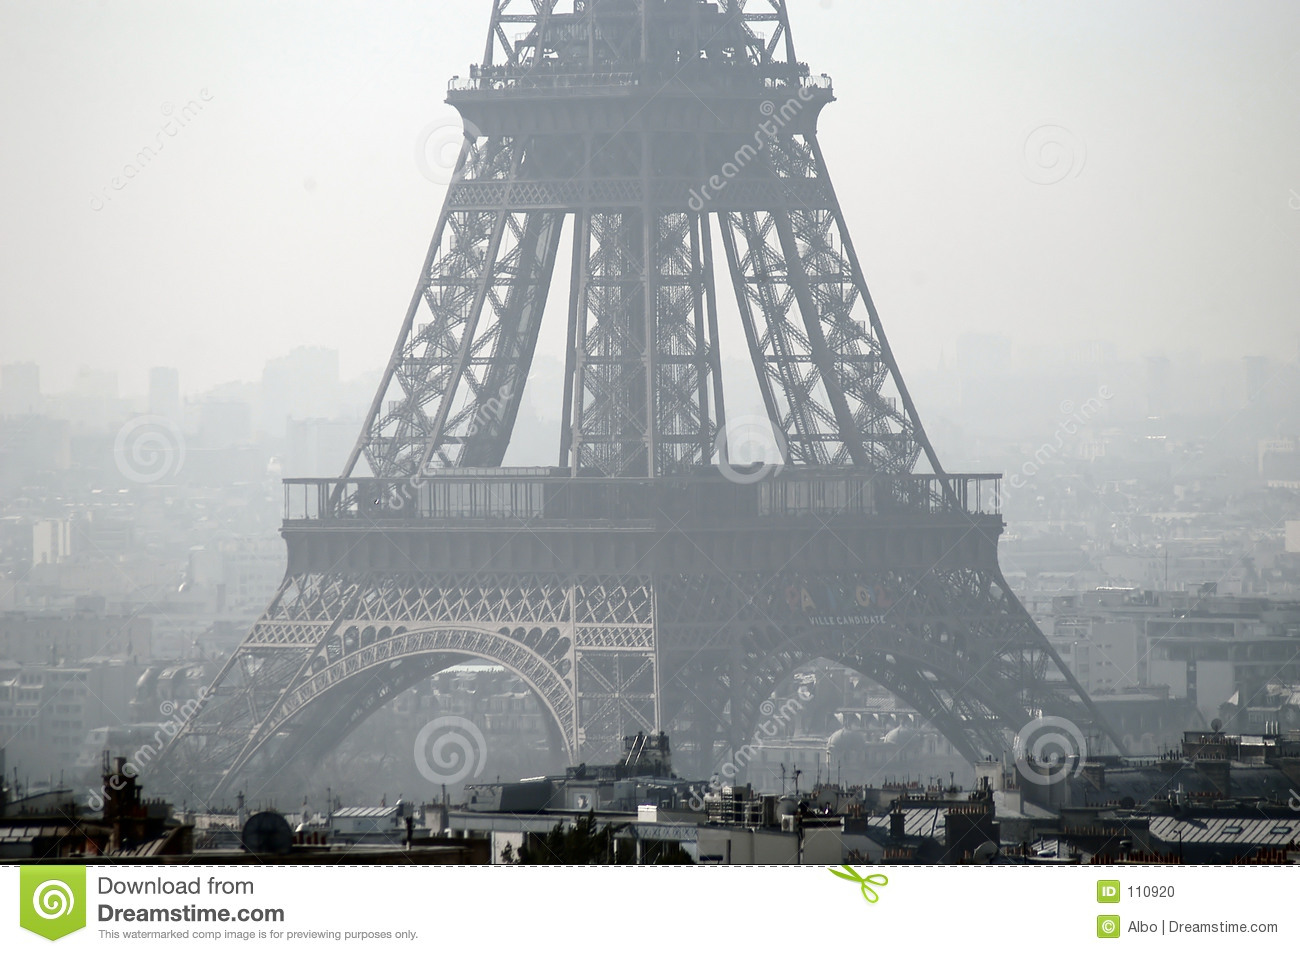 Download Eiffel Tower stock photo. Image of monument, france, tall - 110920